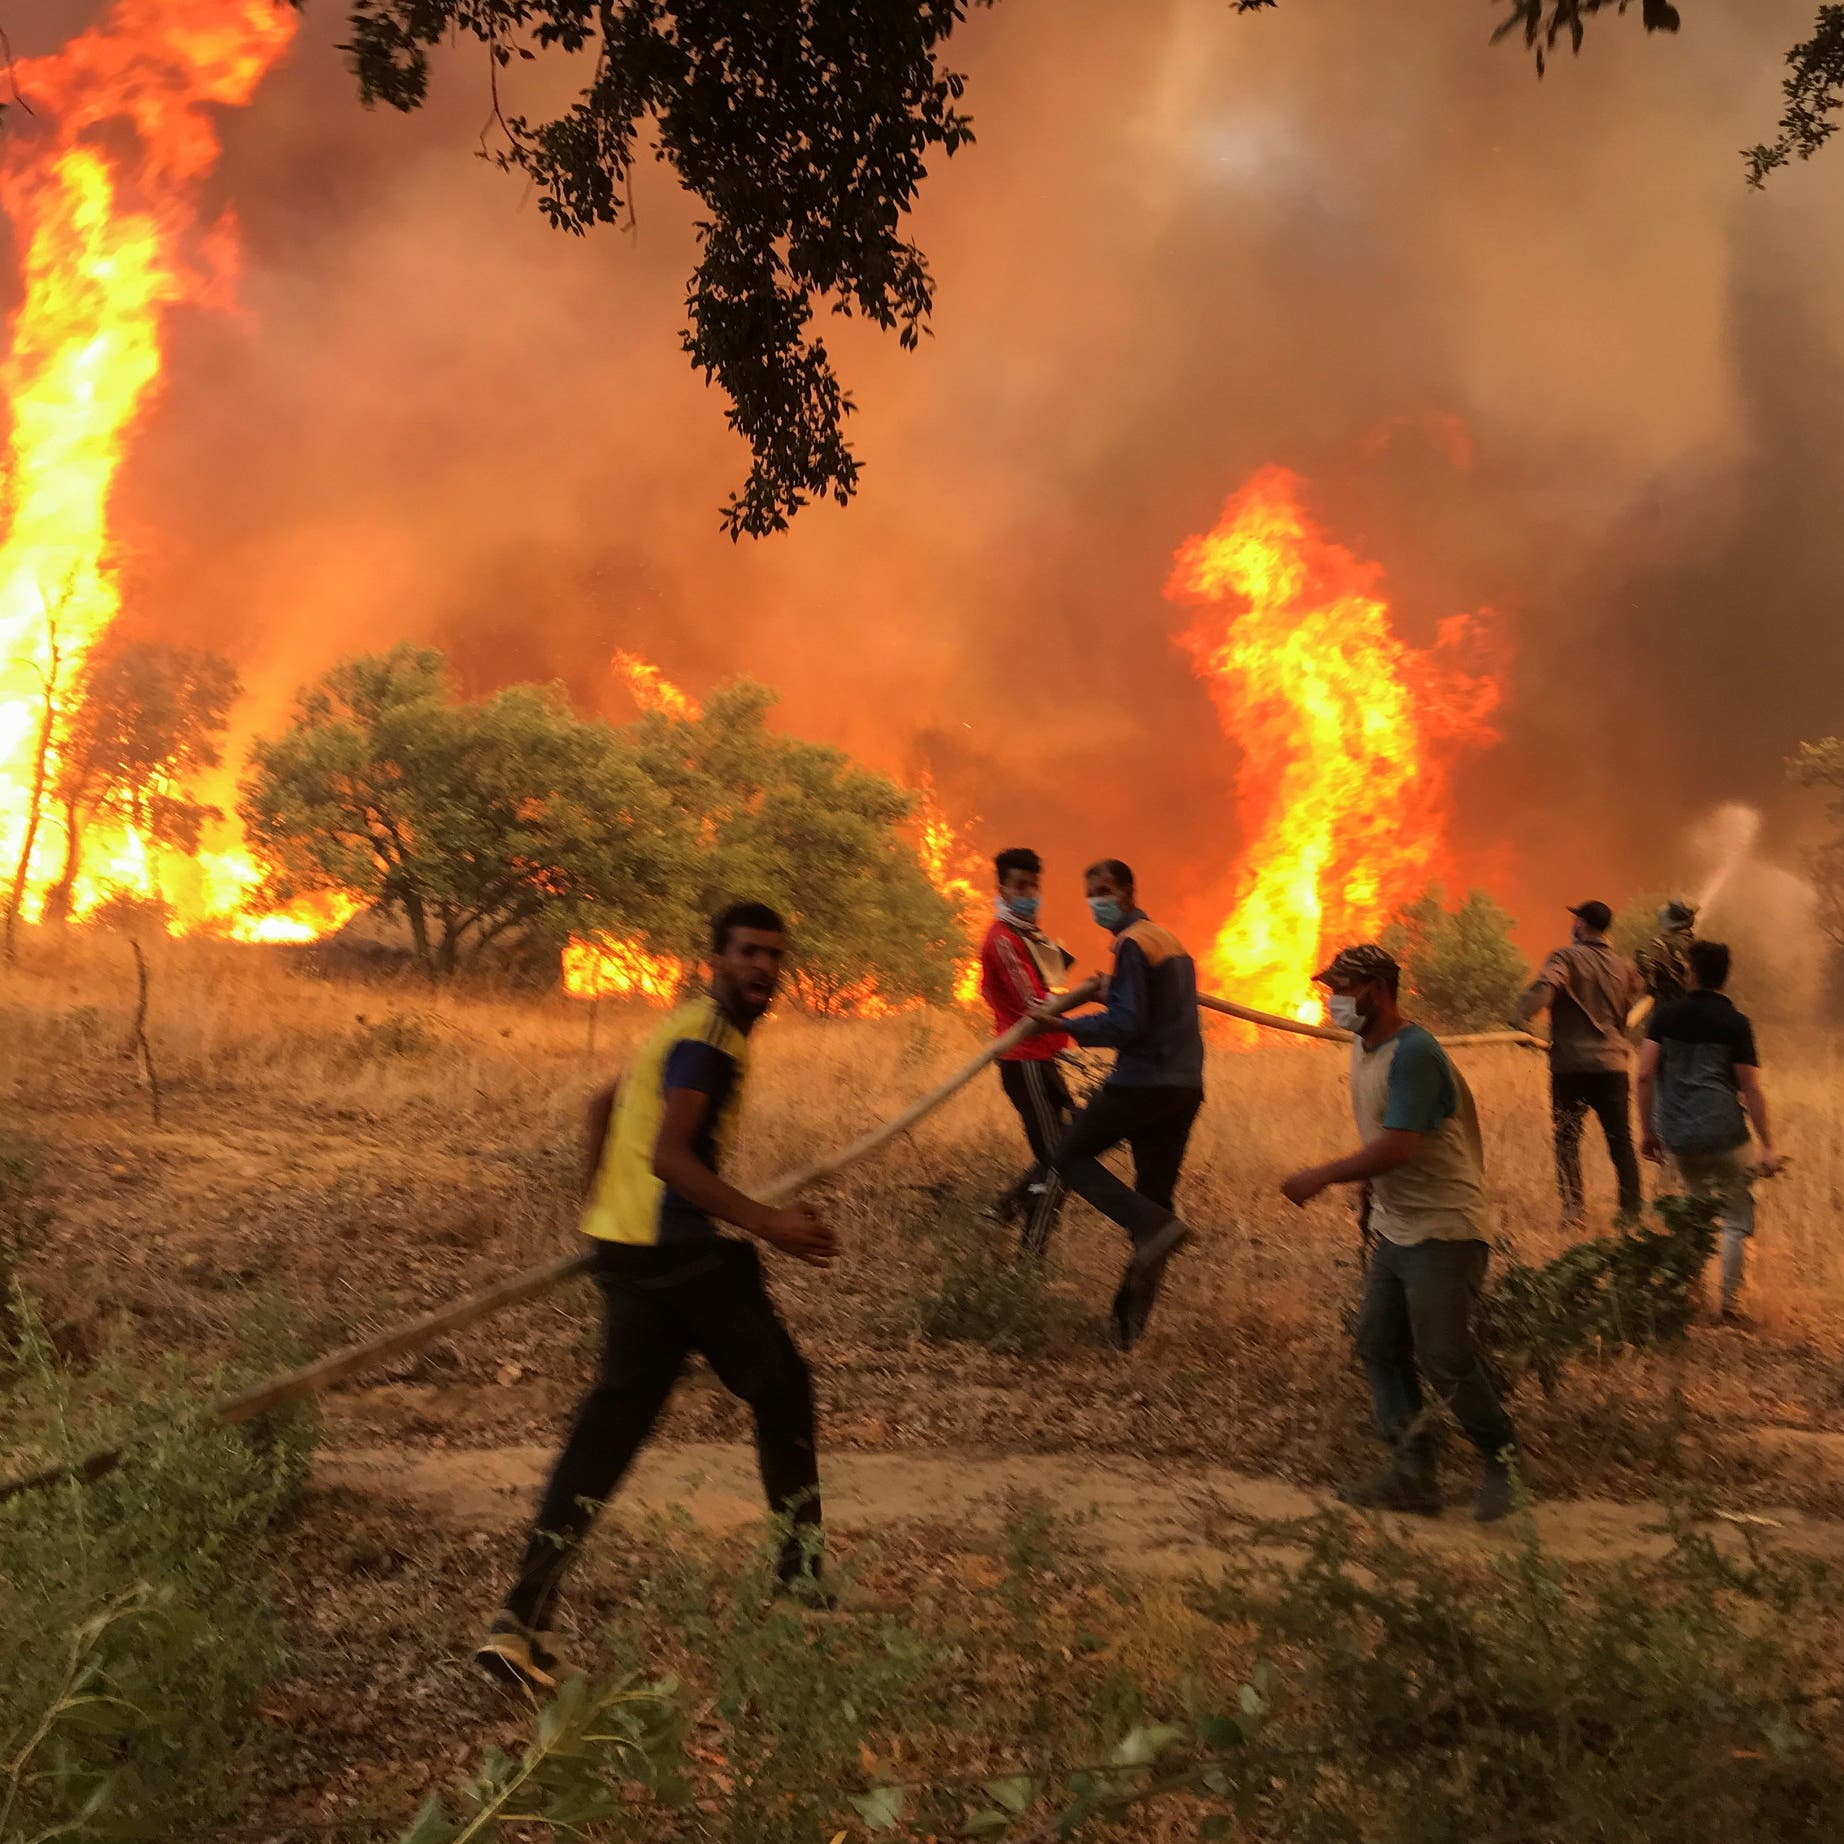 Algeria arrests 22 people suspected of being behind deadly wildfire 'disaster'